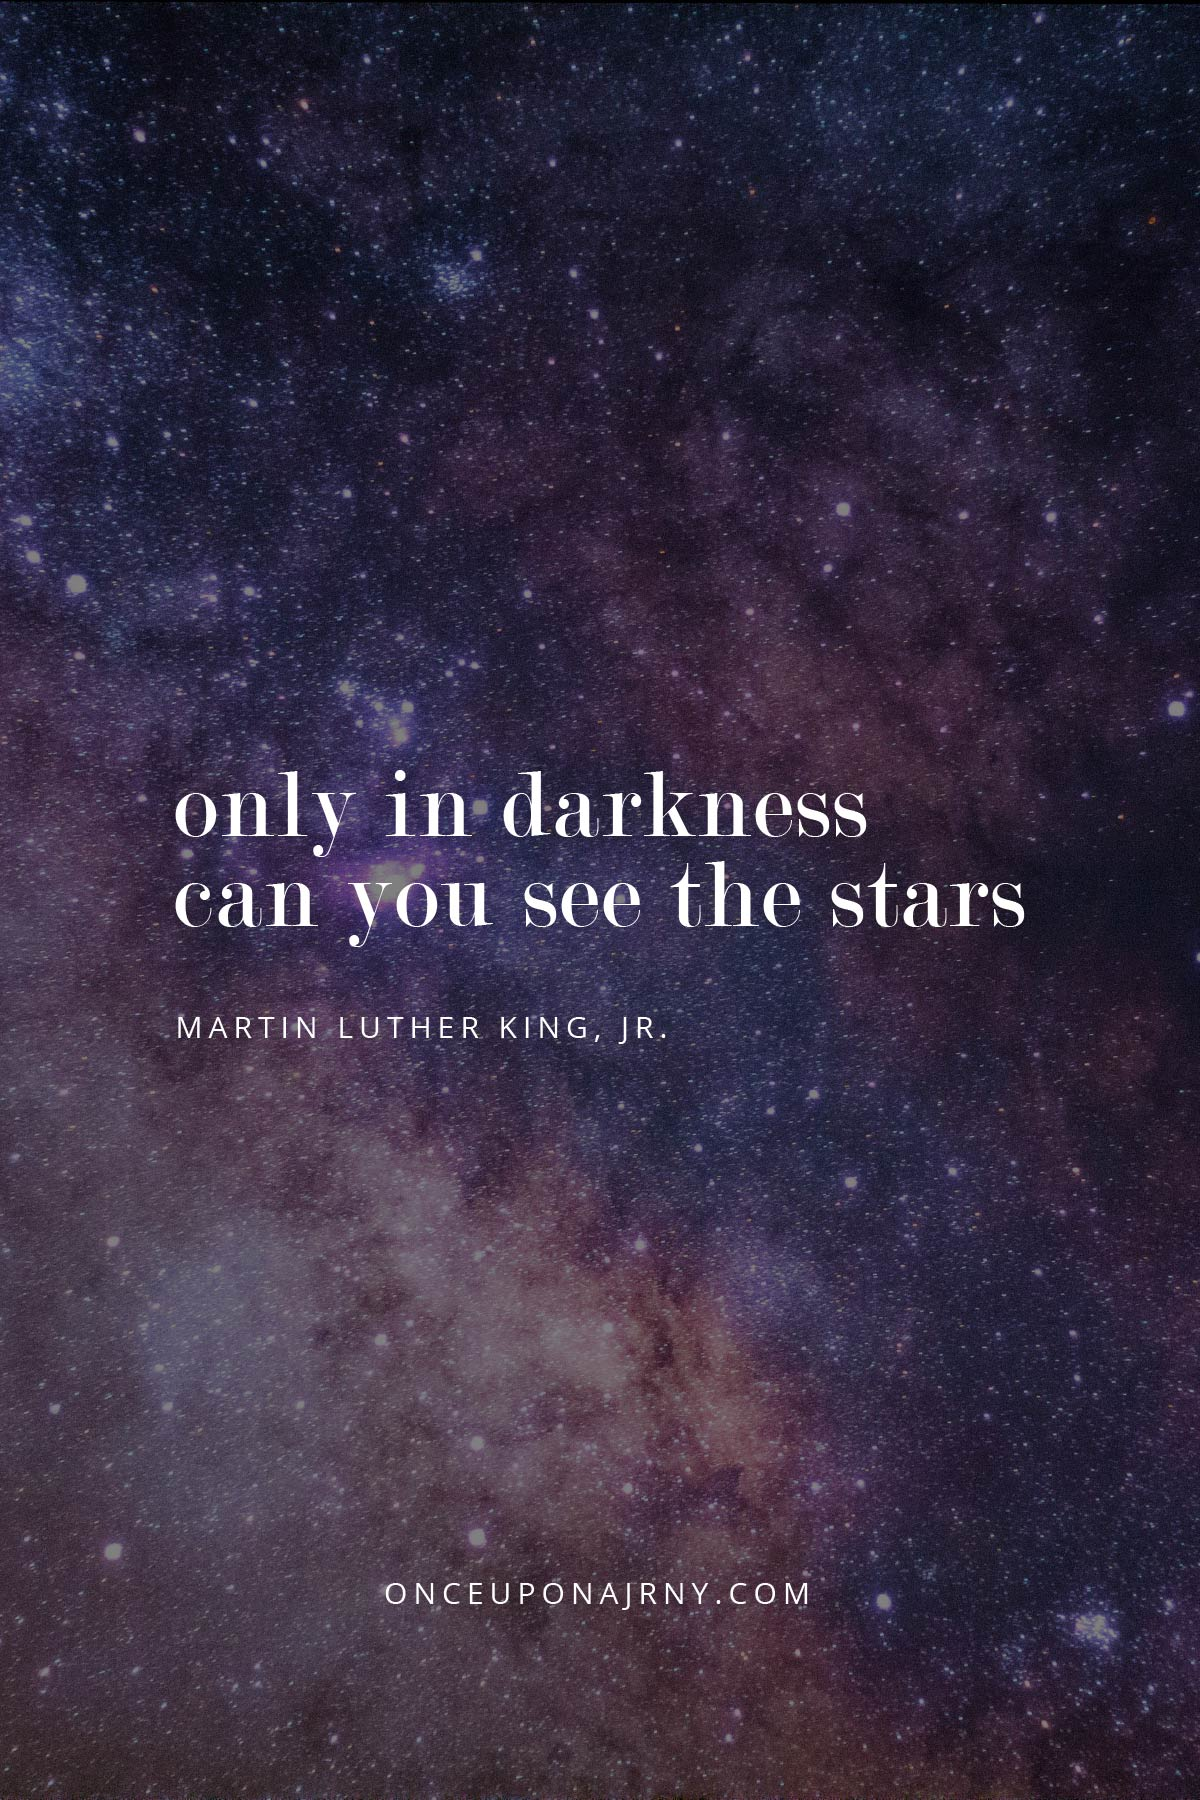 Only in darkness can you see the stars. - Martin Luther King, Jr queer quotes